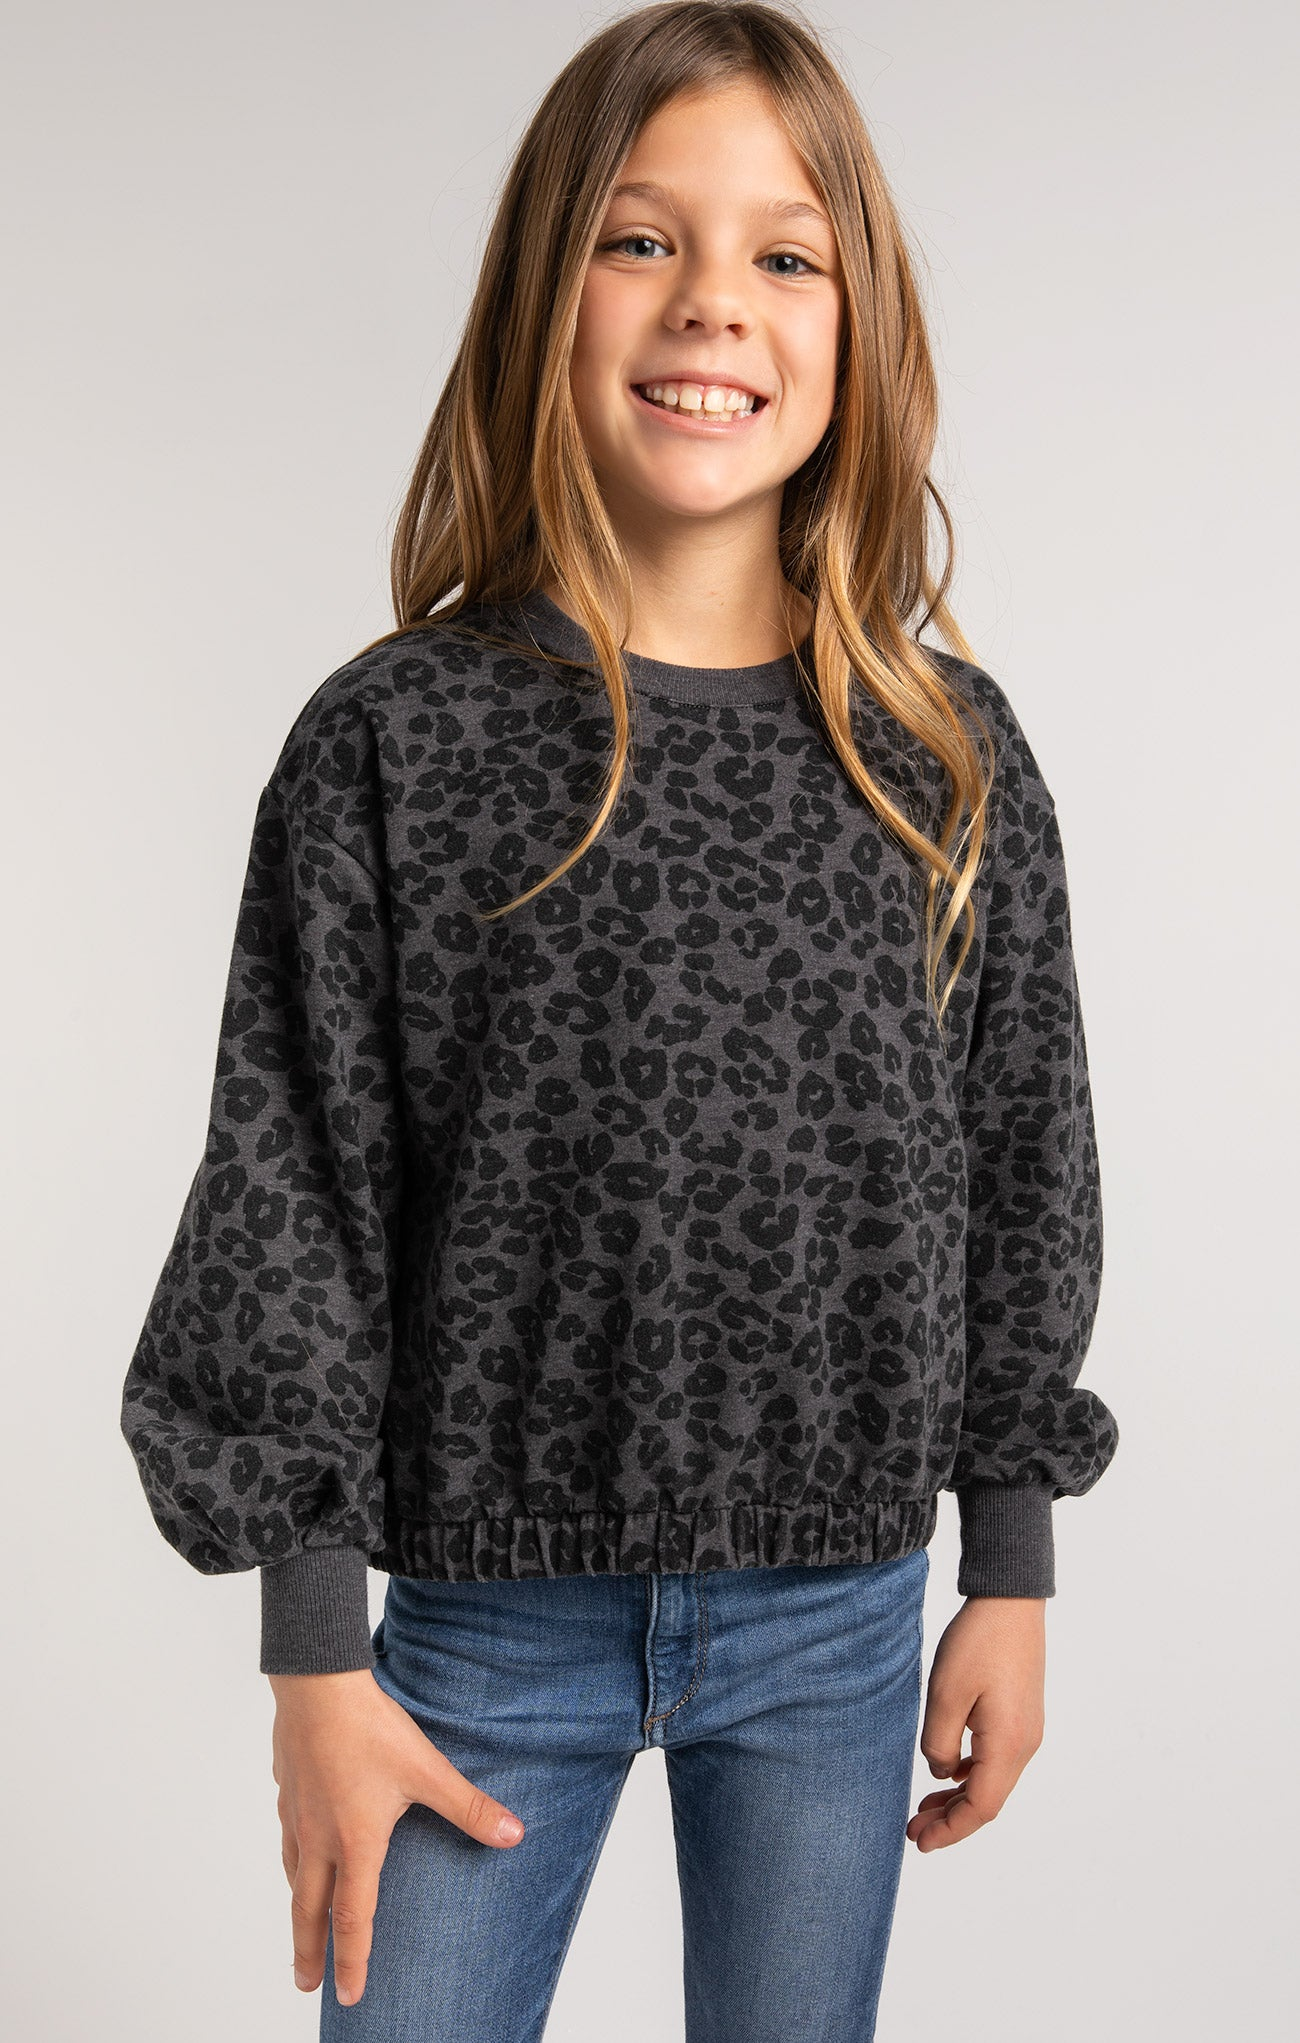 Tops Girls Carmen Leopard Sweatshirt Girls Carmen Leopard Sweatshirt